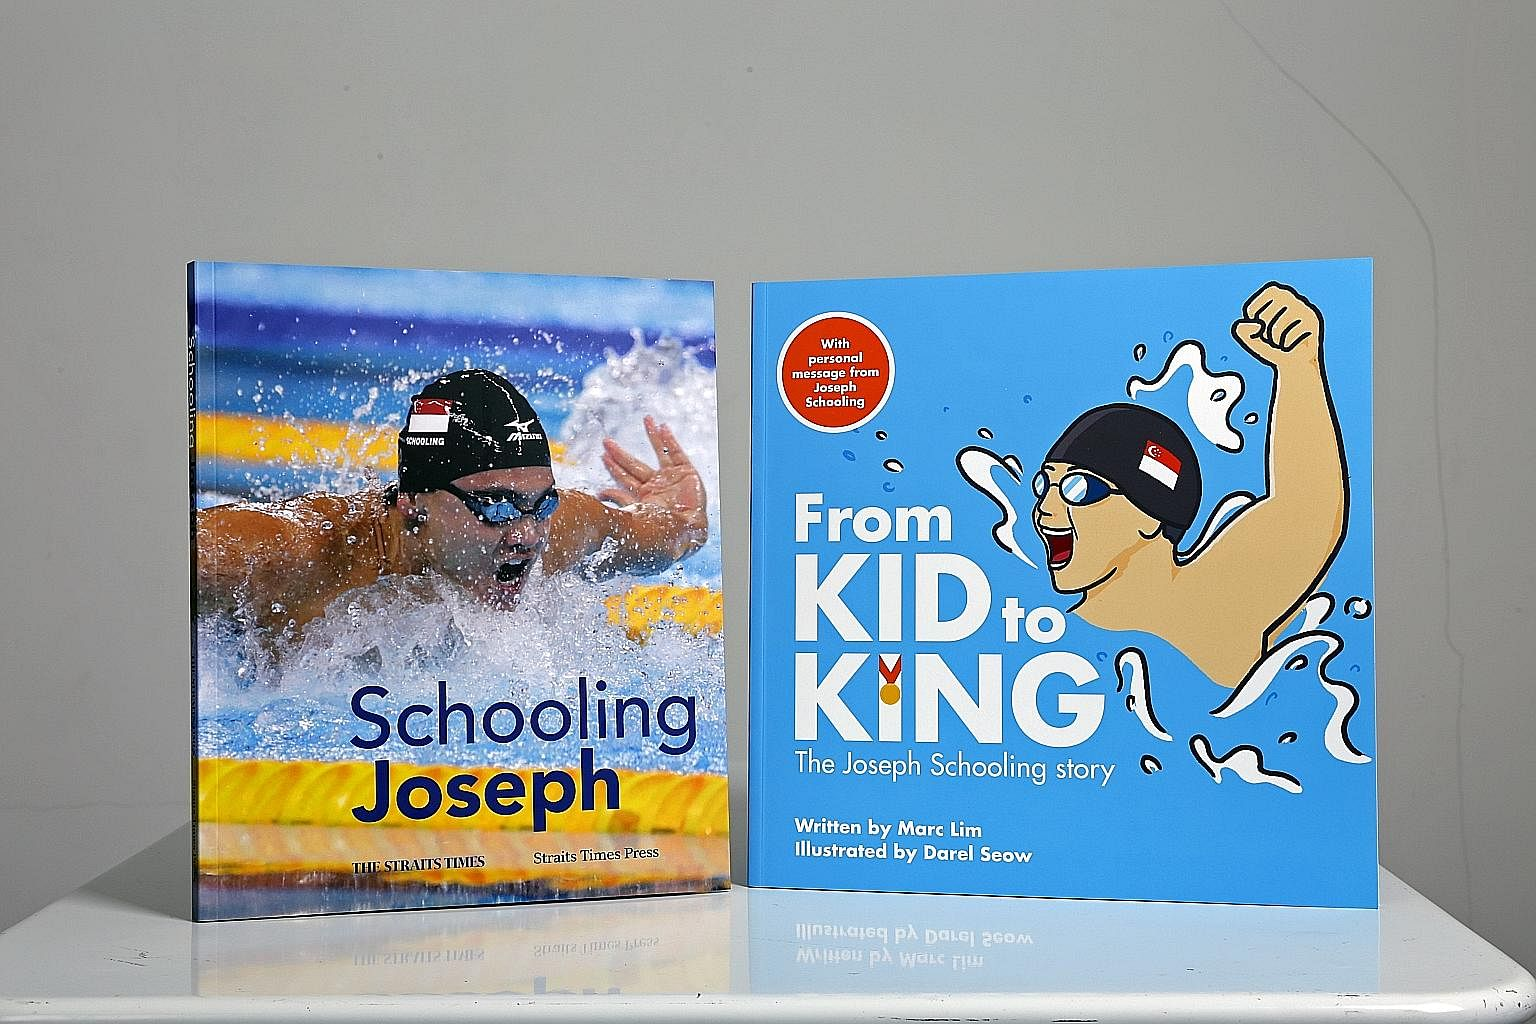 """The """"Hello, My Name is Joseph Schooling"""" concept train will run on the Circle Line till Dec 8. It has images of the swimmer's journey and pledges encouraging people to chase their dreams. Right: Schooling Joseph is written for adult fans, whil"""